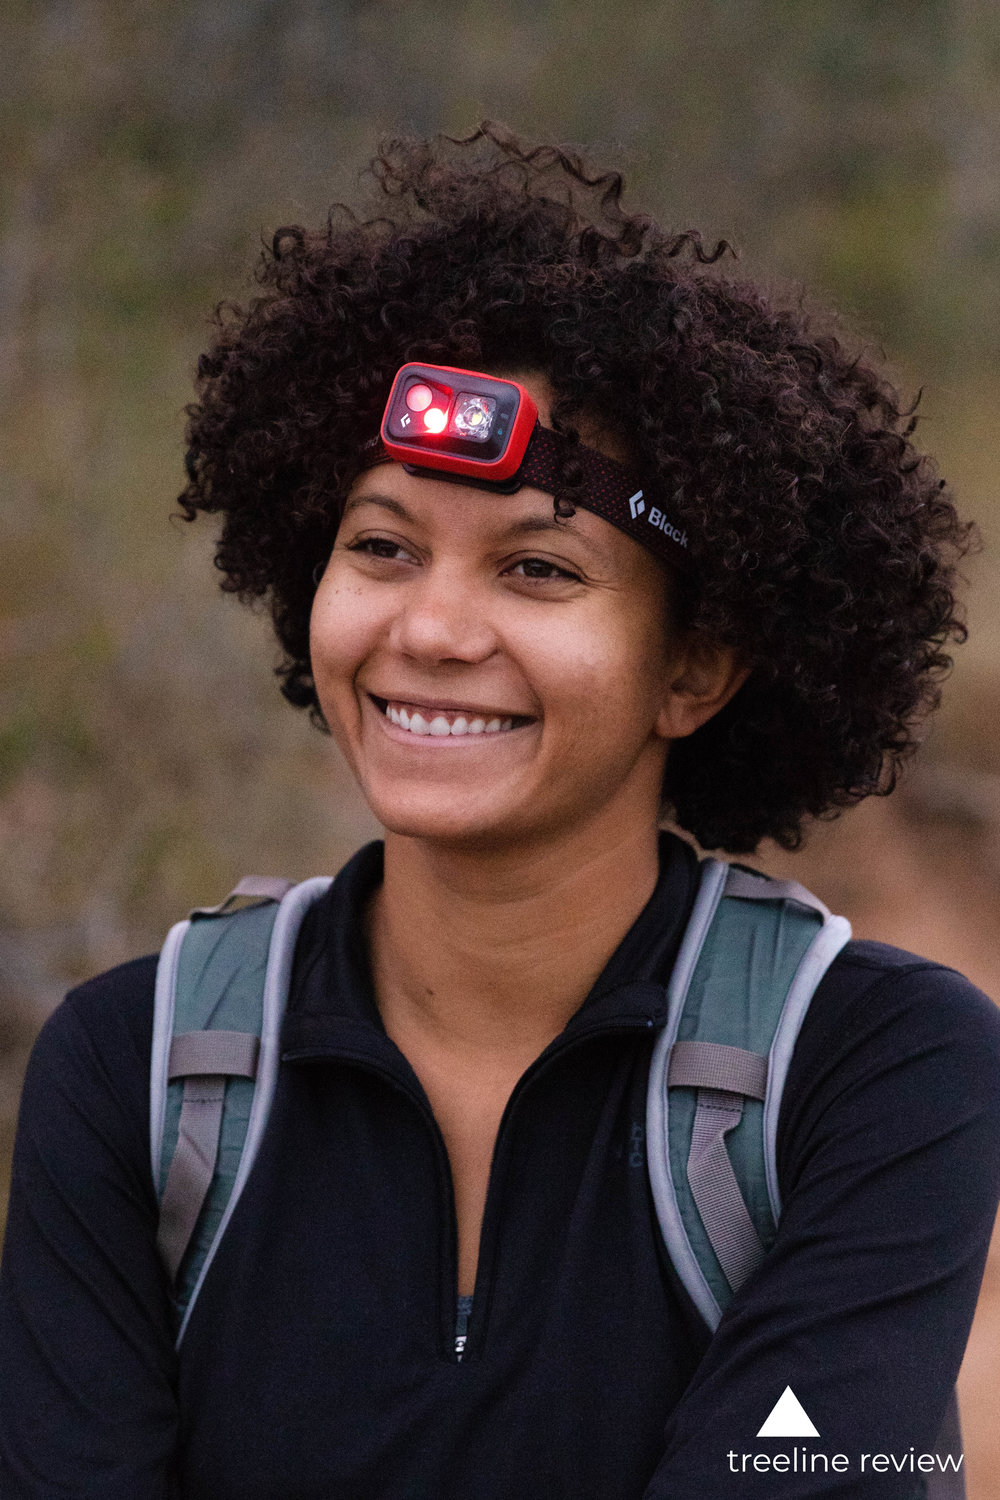 A quality headlamp should stay on your head without pinching or causing a headache.   Photo of Treeline Review writer Amanda Jameson by John Carr.